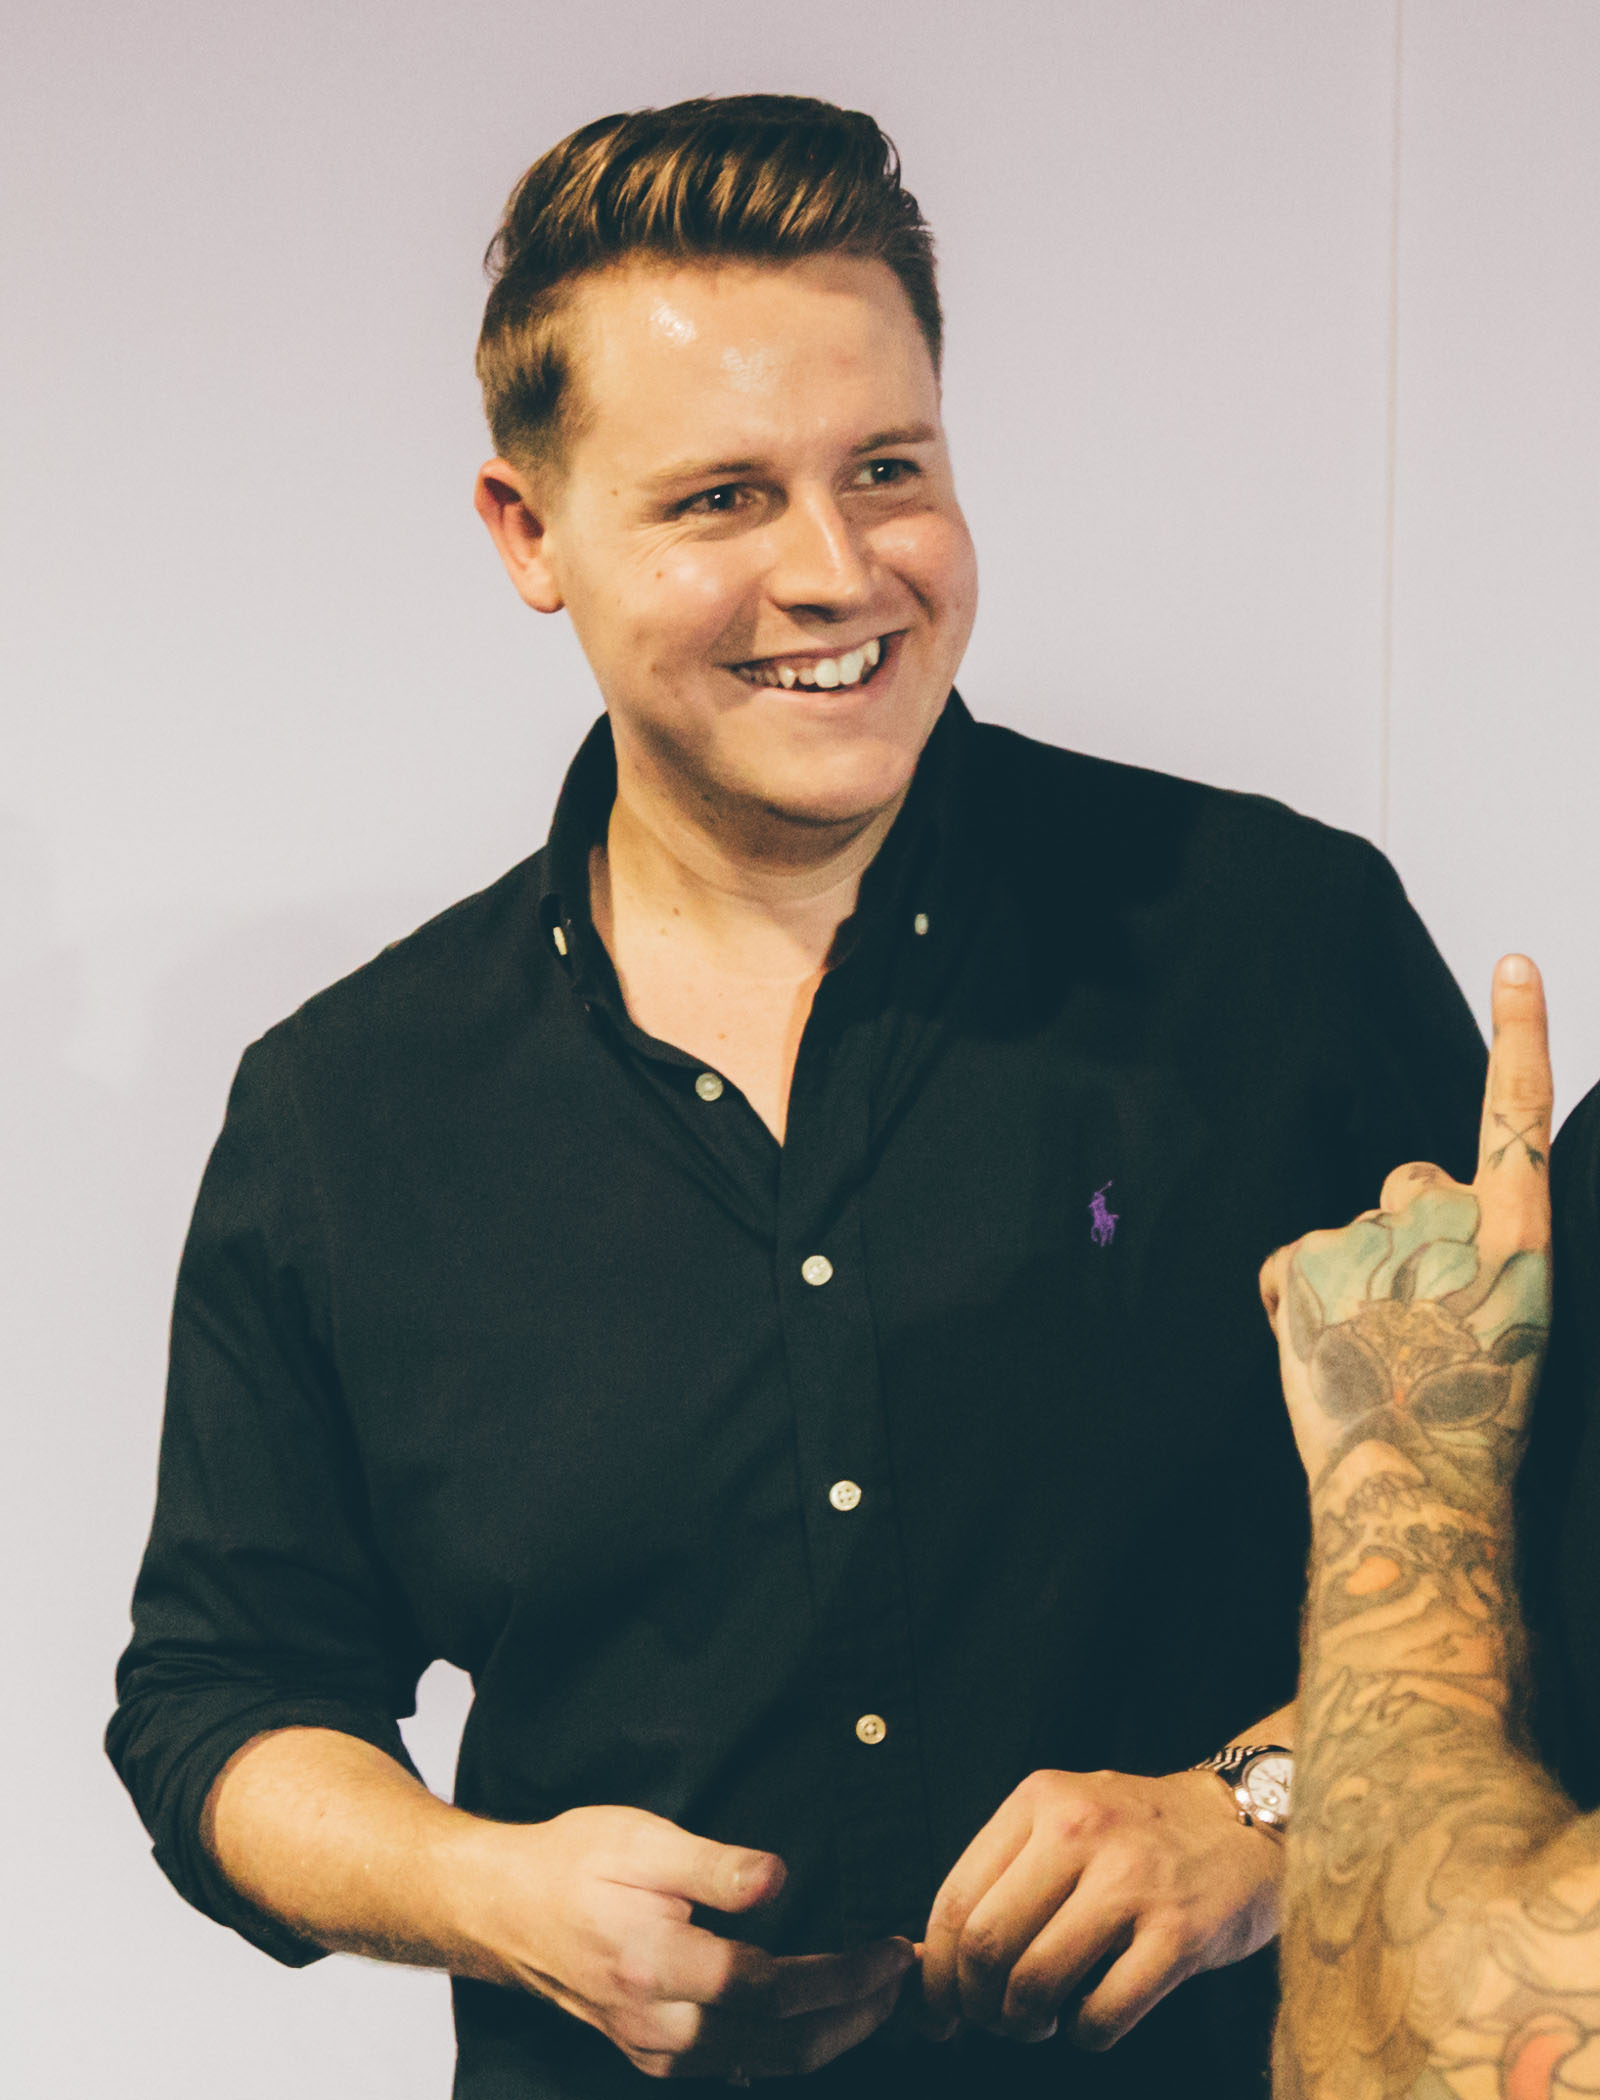 Sam Mangan - As Founder and Managing Director of Spin&Co. Sam oversees all of the agencies clients and business.He travels between the US and Australia regularly to meet with clients and liaise with some of the worlds biggest celebrities and identities.